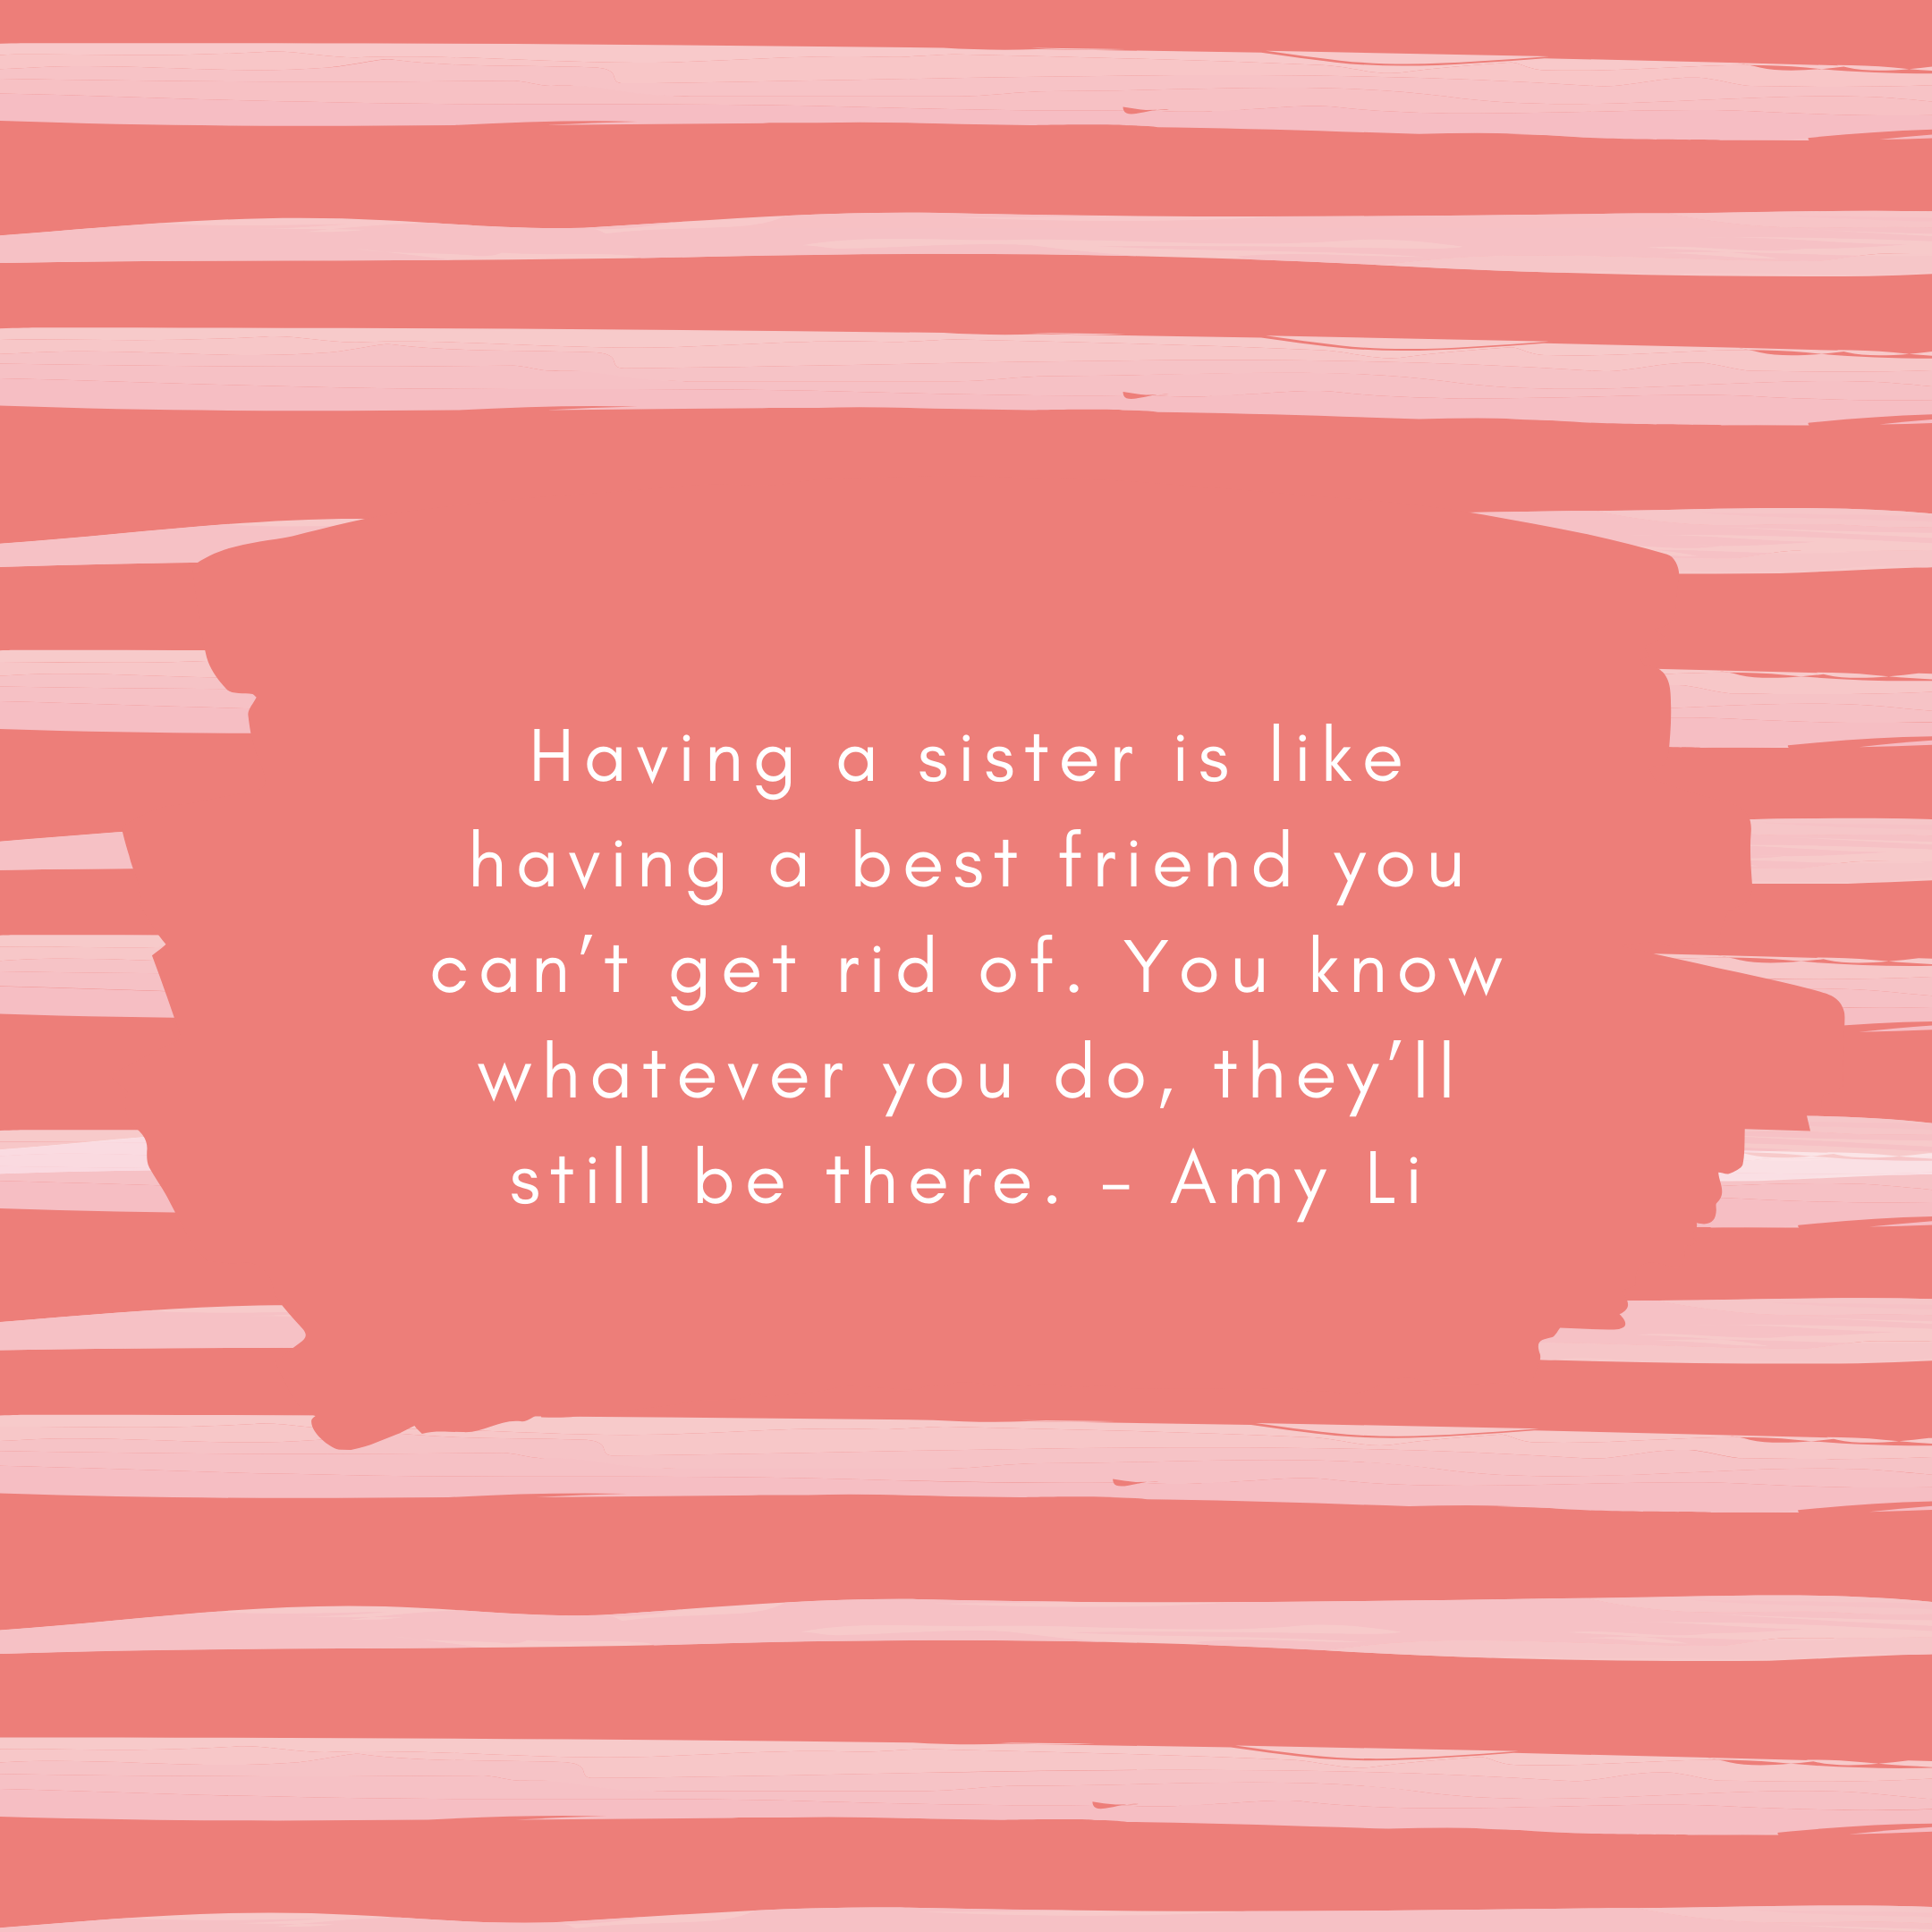 Having a sister is like having a best friend you can't get rid of. You know whatever you do, they'll still be there. – Amy Li